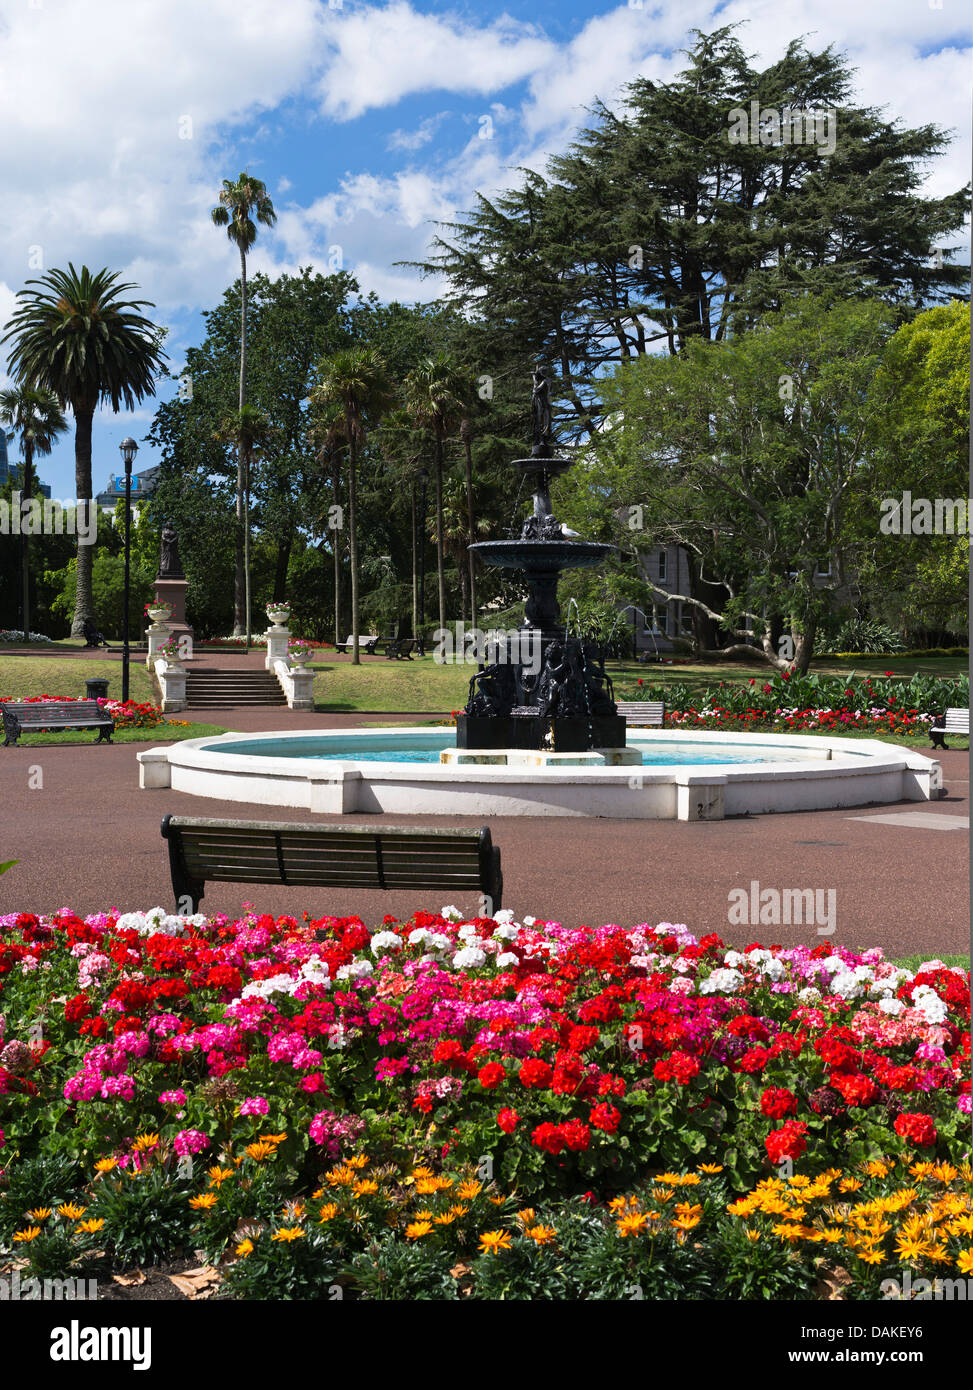 Water fountains outdoor new zealand -  Dh Albert Park Auckland New Zealand Fountain Pool Flower Garden Stock Photo